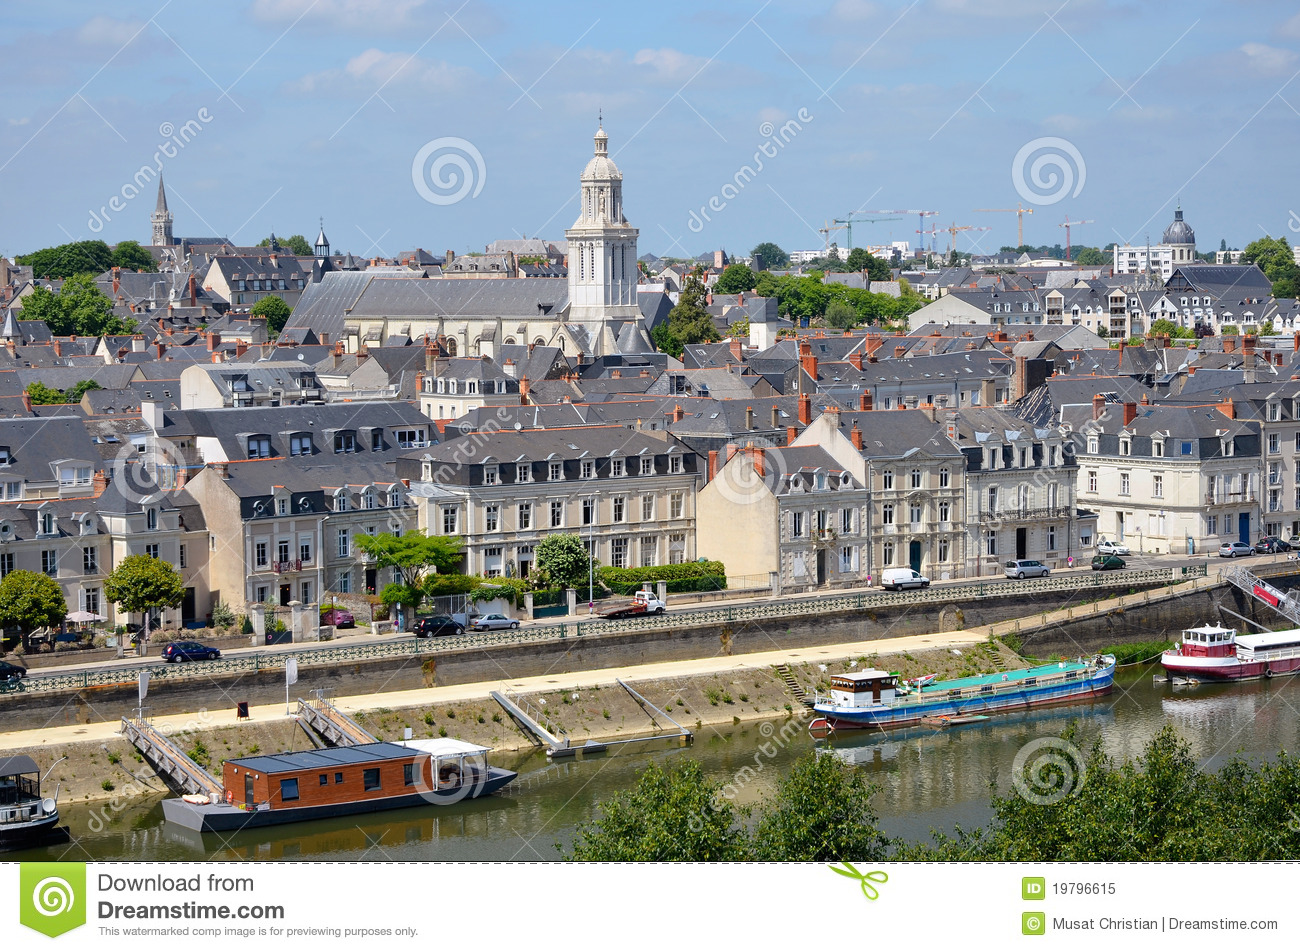 City of angers in france royalty free stock photo image 19796615 - Boutique free angers ...